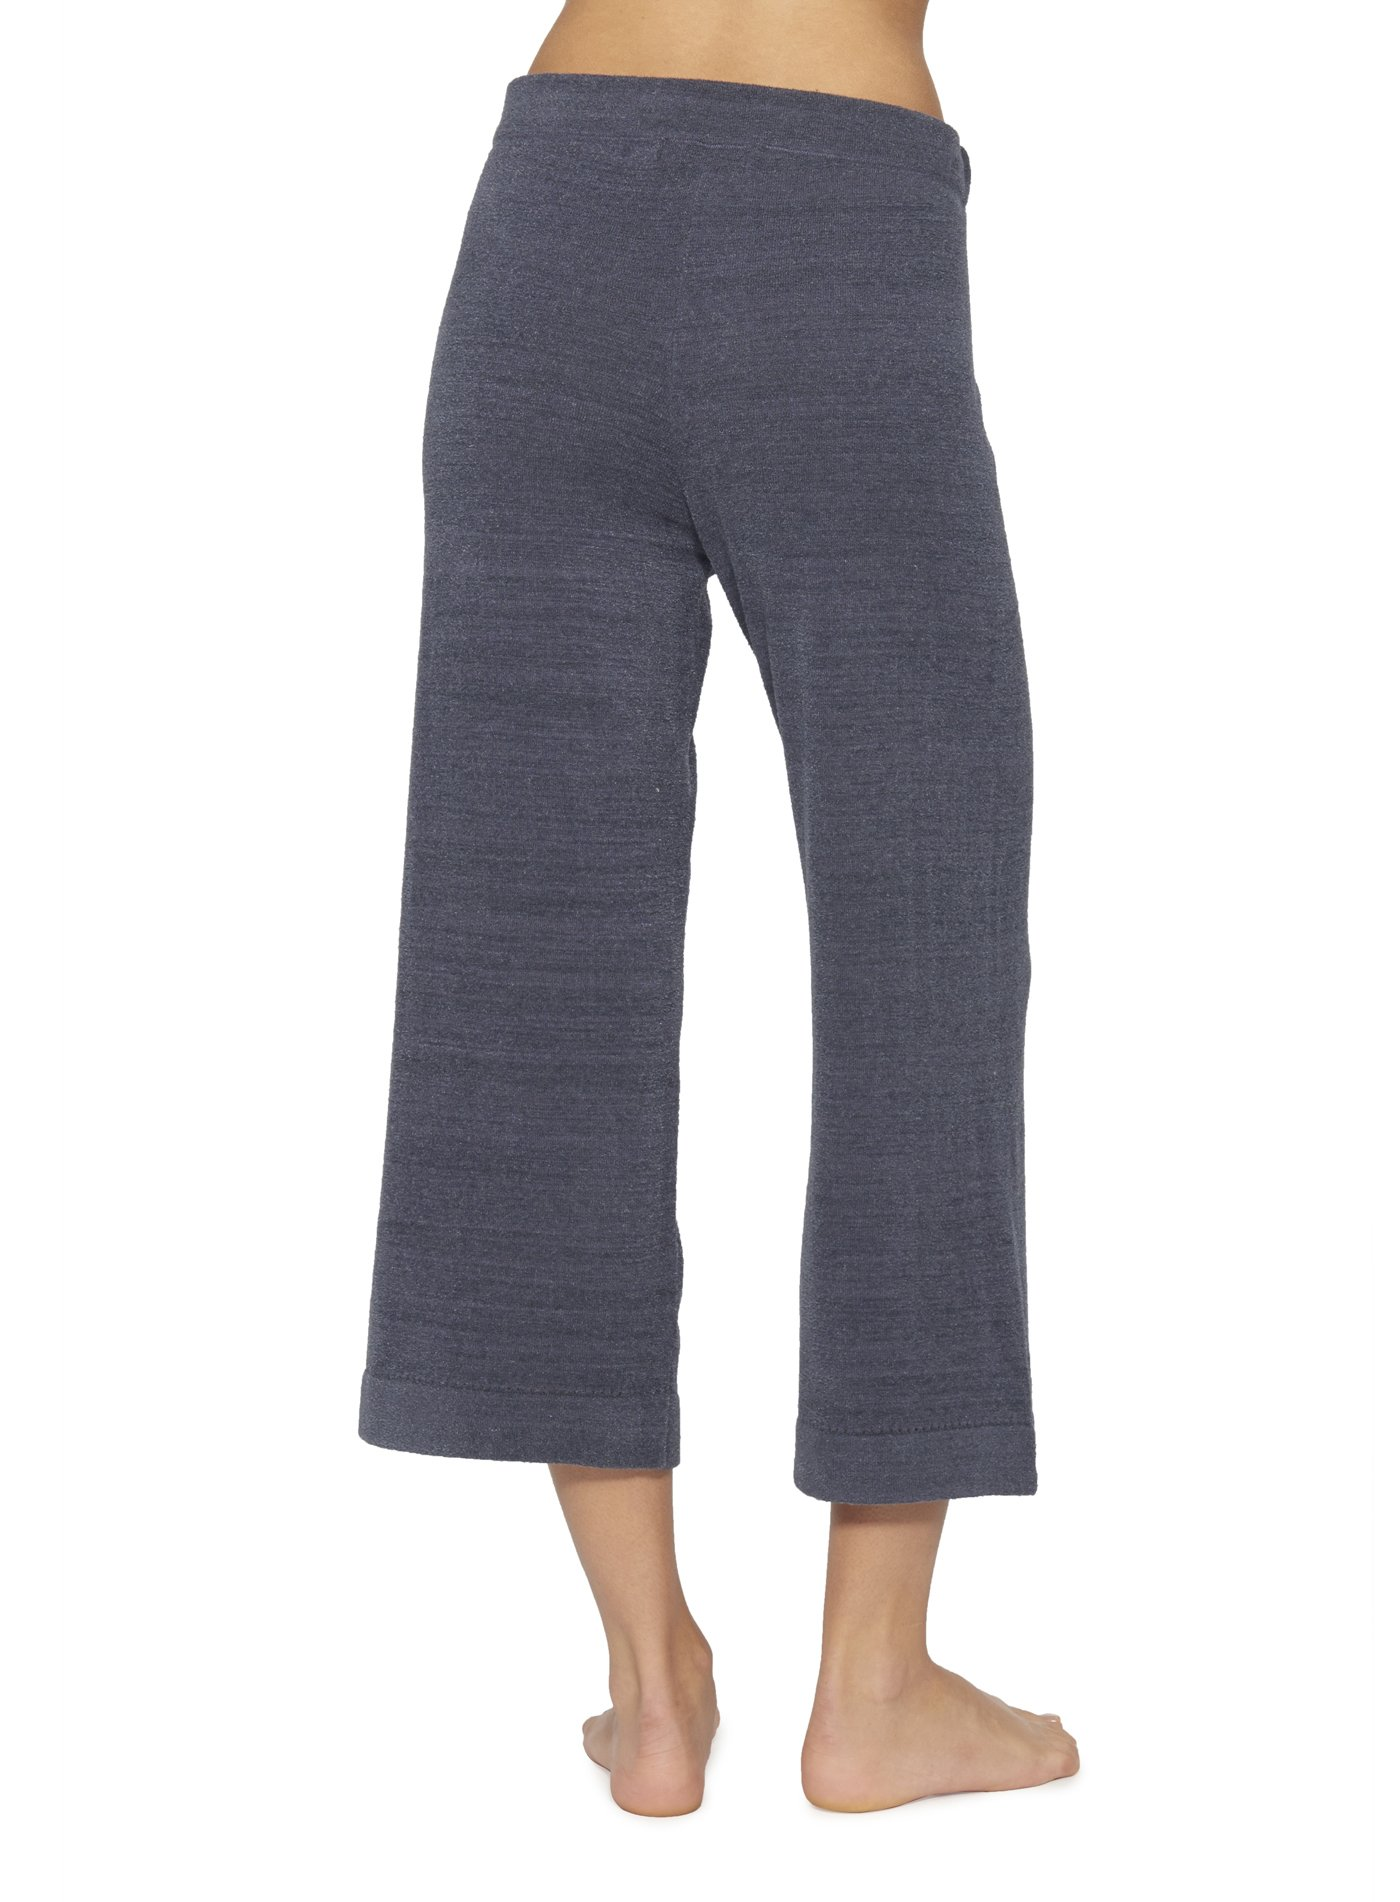 Barefoot Dreams CozyChic Ultra Lite Culotte Capri Pants - Medium - By Barefoot Dreams by Barefoot Dreams (Image #3)